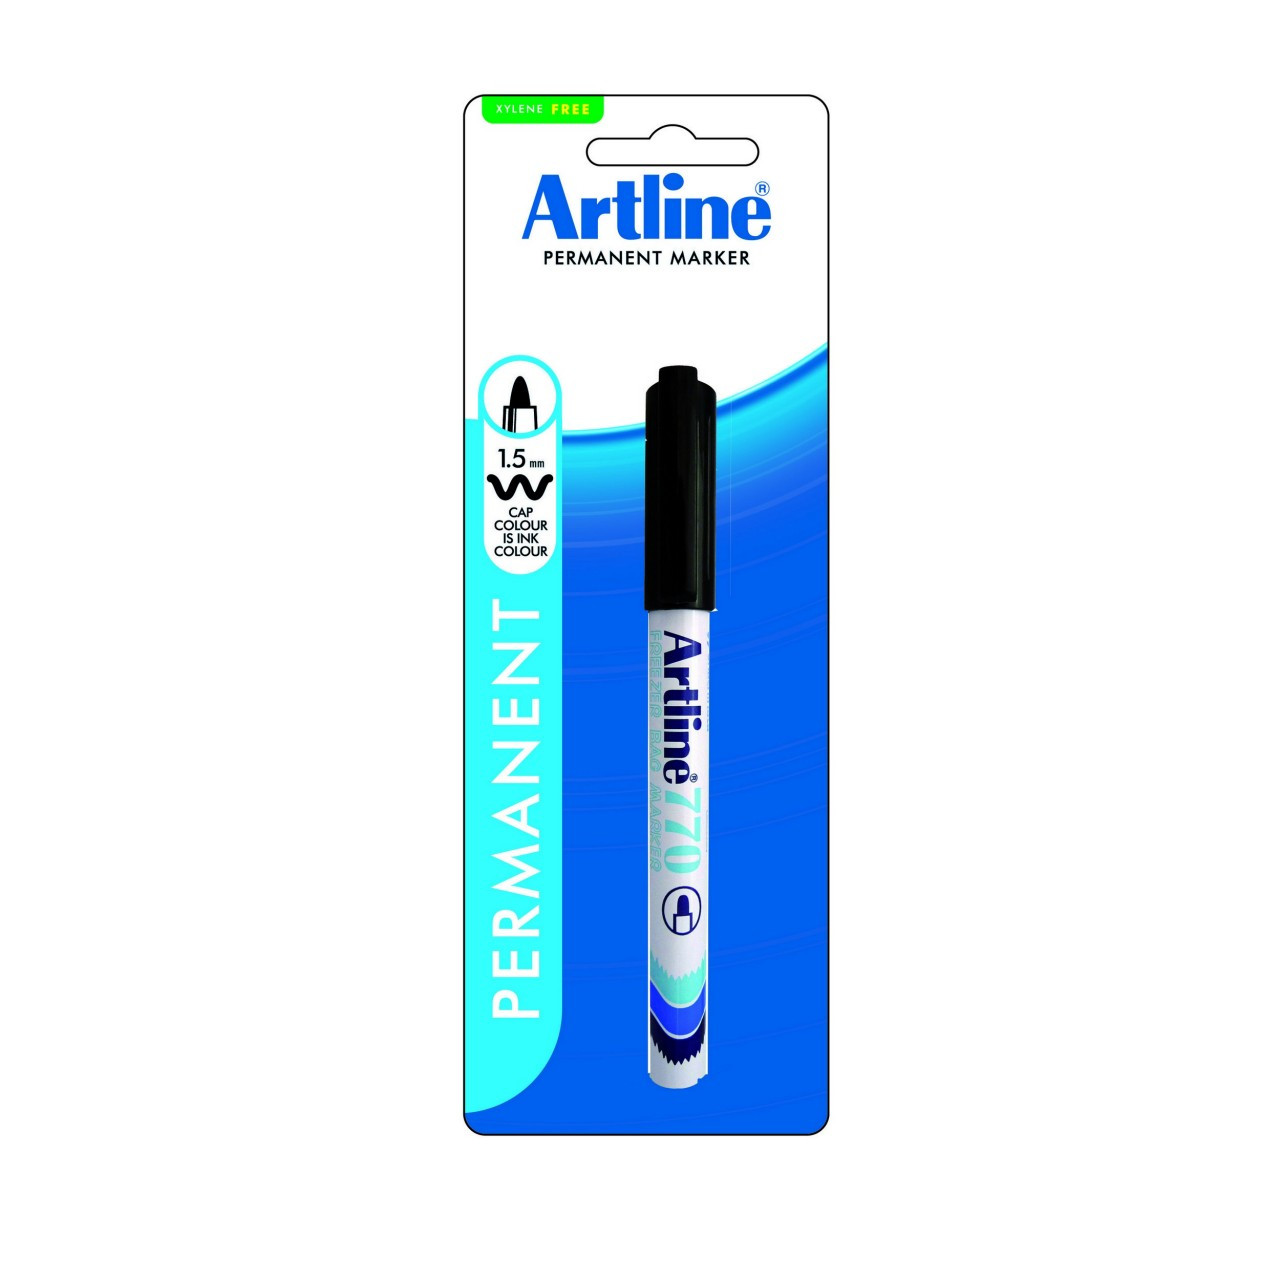 Artline 770 Freezer Bag Marker 1.0Mm Bullet Nib Black X 6 Units